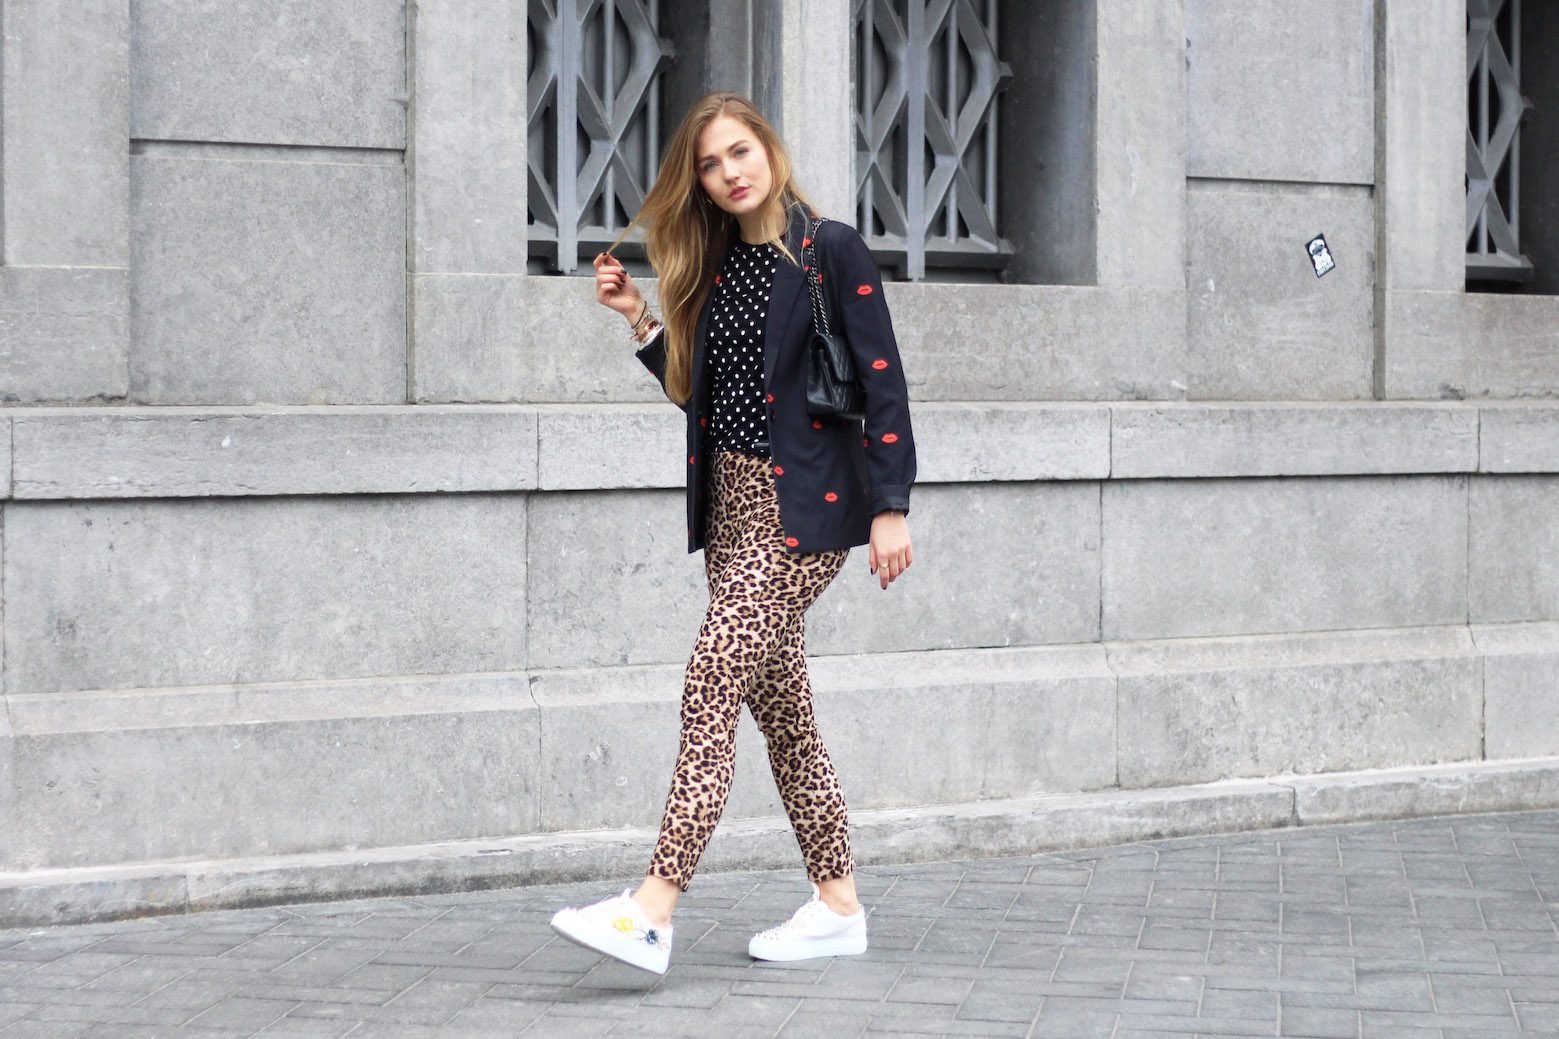 floortjeloves, these steps will make you a more positive person, colourful rebel, daylliance, white sneakers, agl, chanel, chanel bag, chanel classic, louis vuitton, louis vuitton earrings, zara, leopard, leopard print,